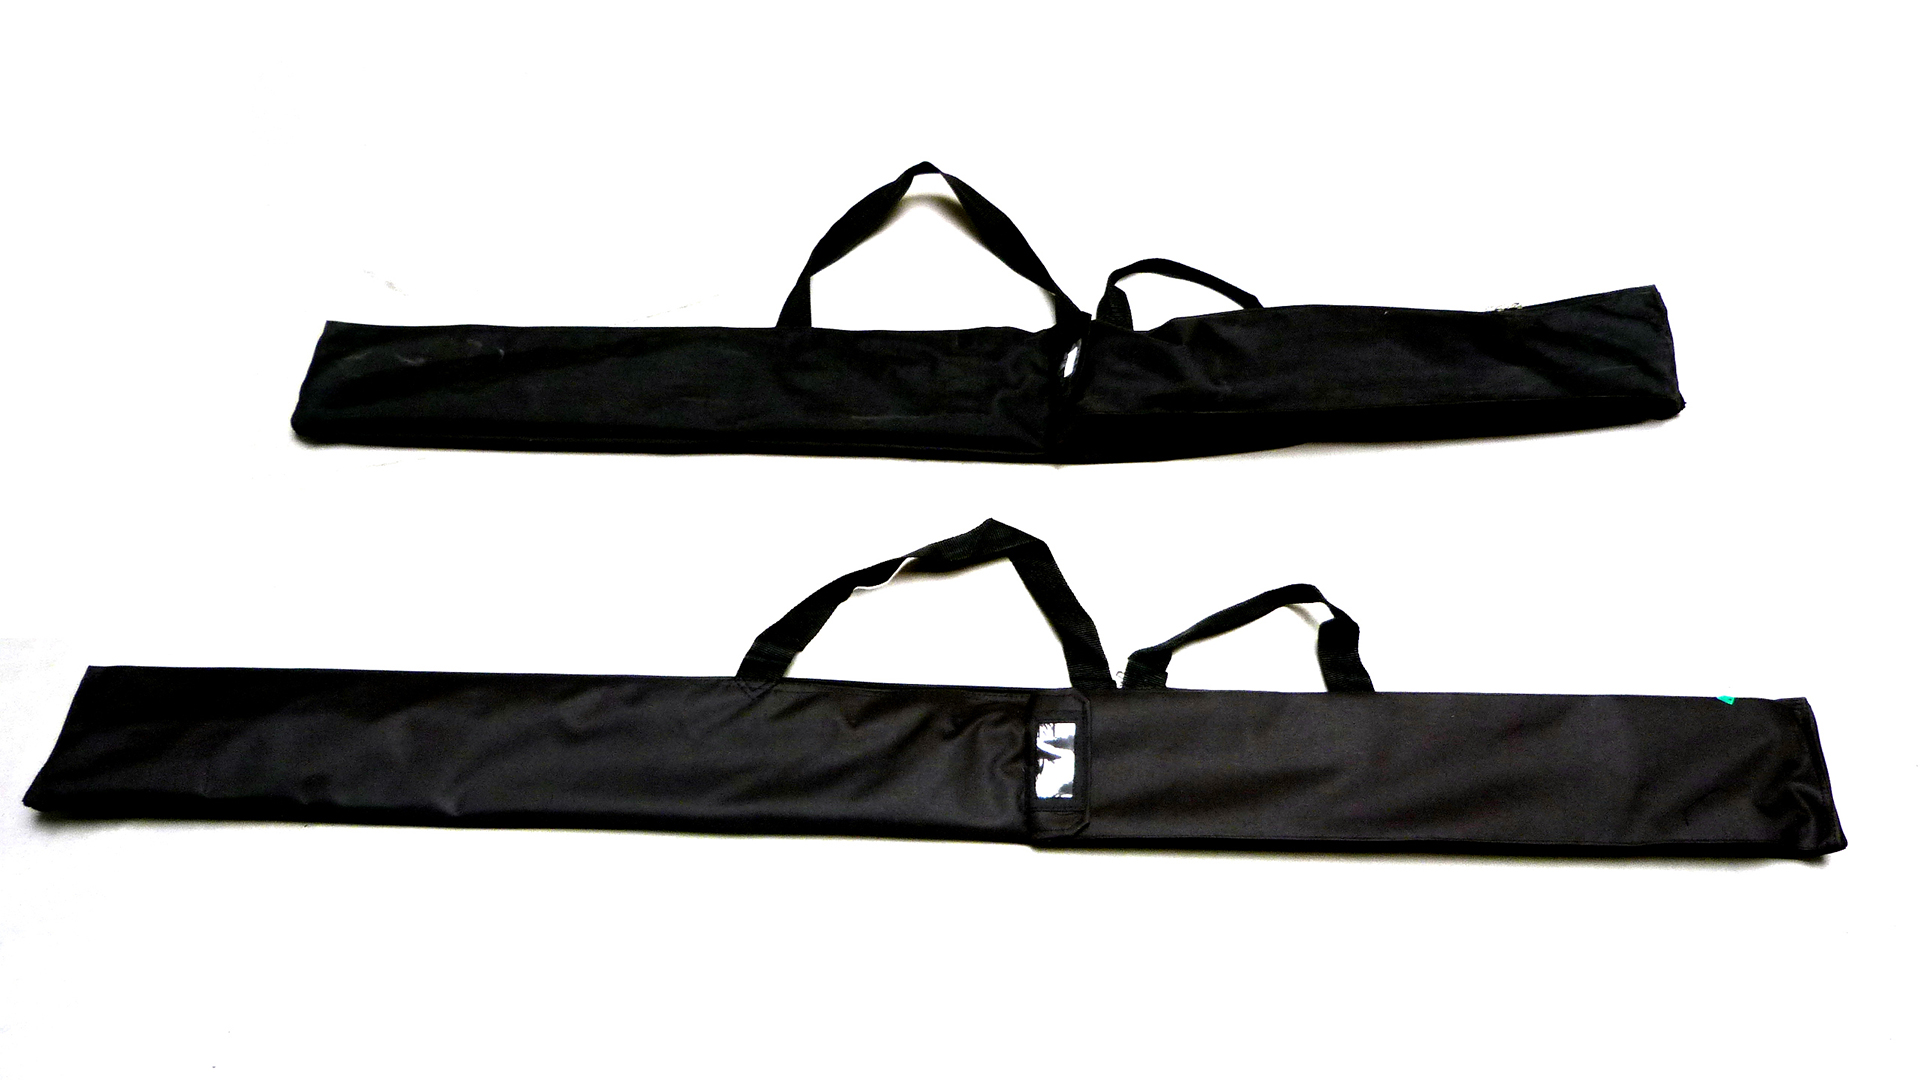 The weight of the flags is optimized for transport. A pole bag is included.